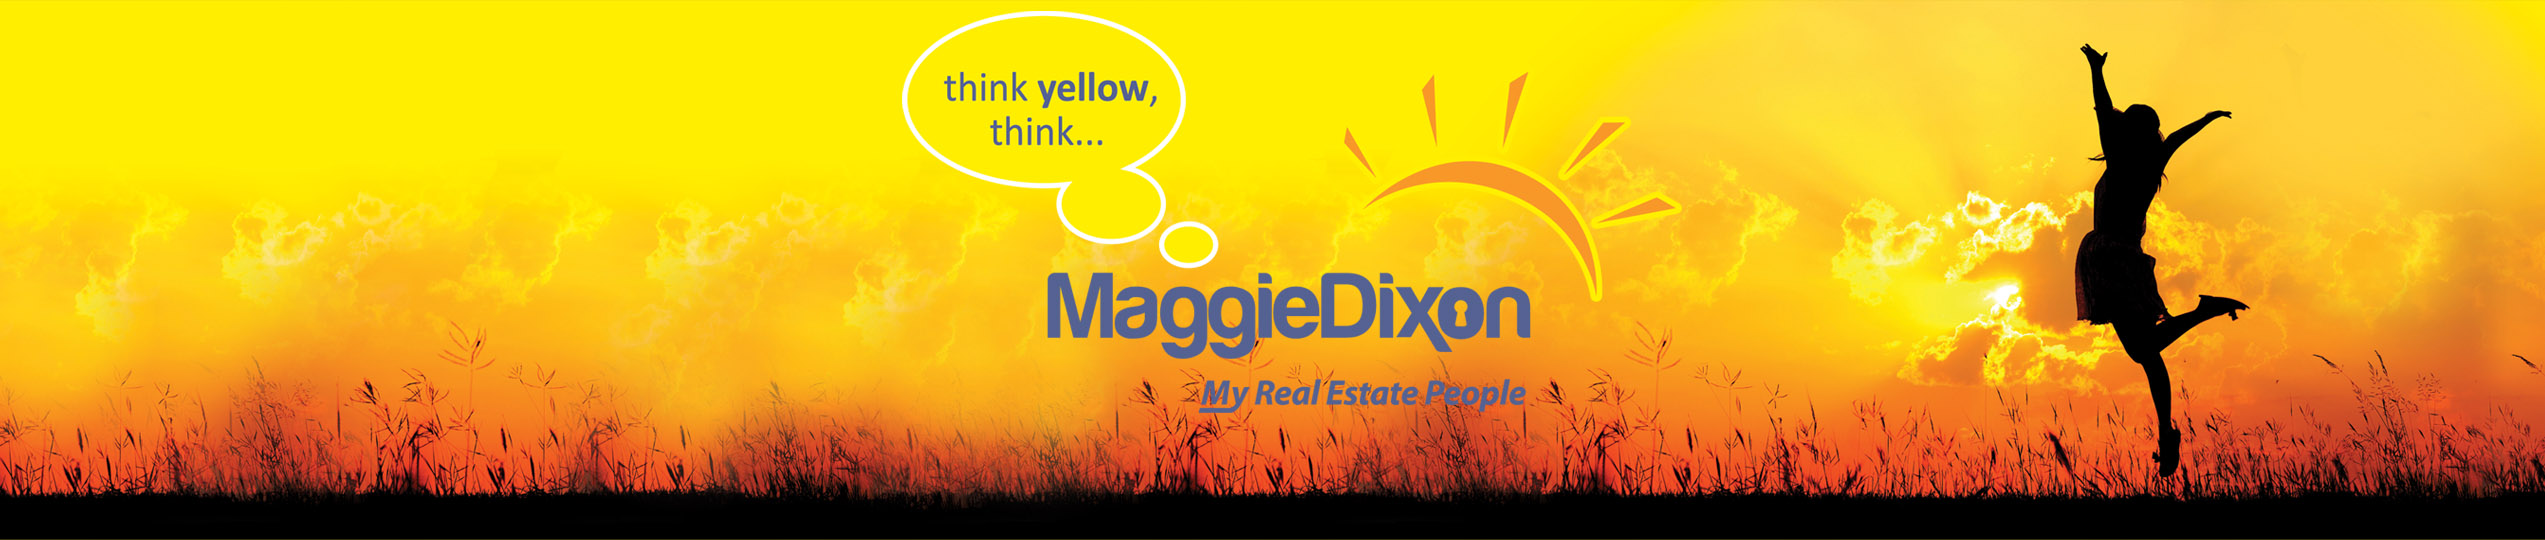 think yellow, think maggie dixon my real estate people. Girl's silhouette jumping as the sun sets